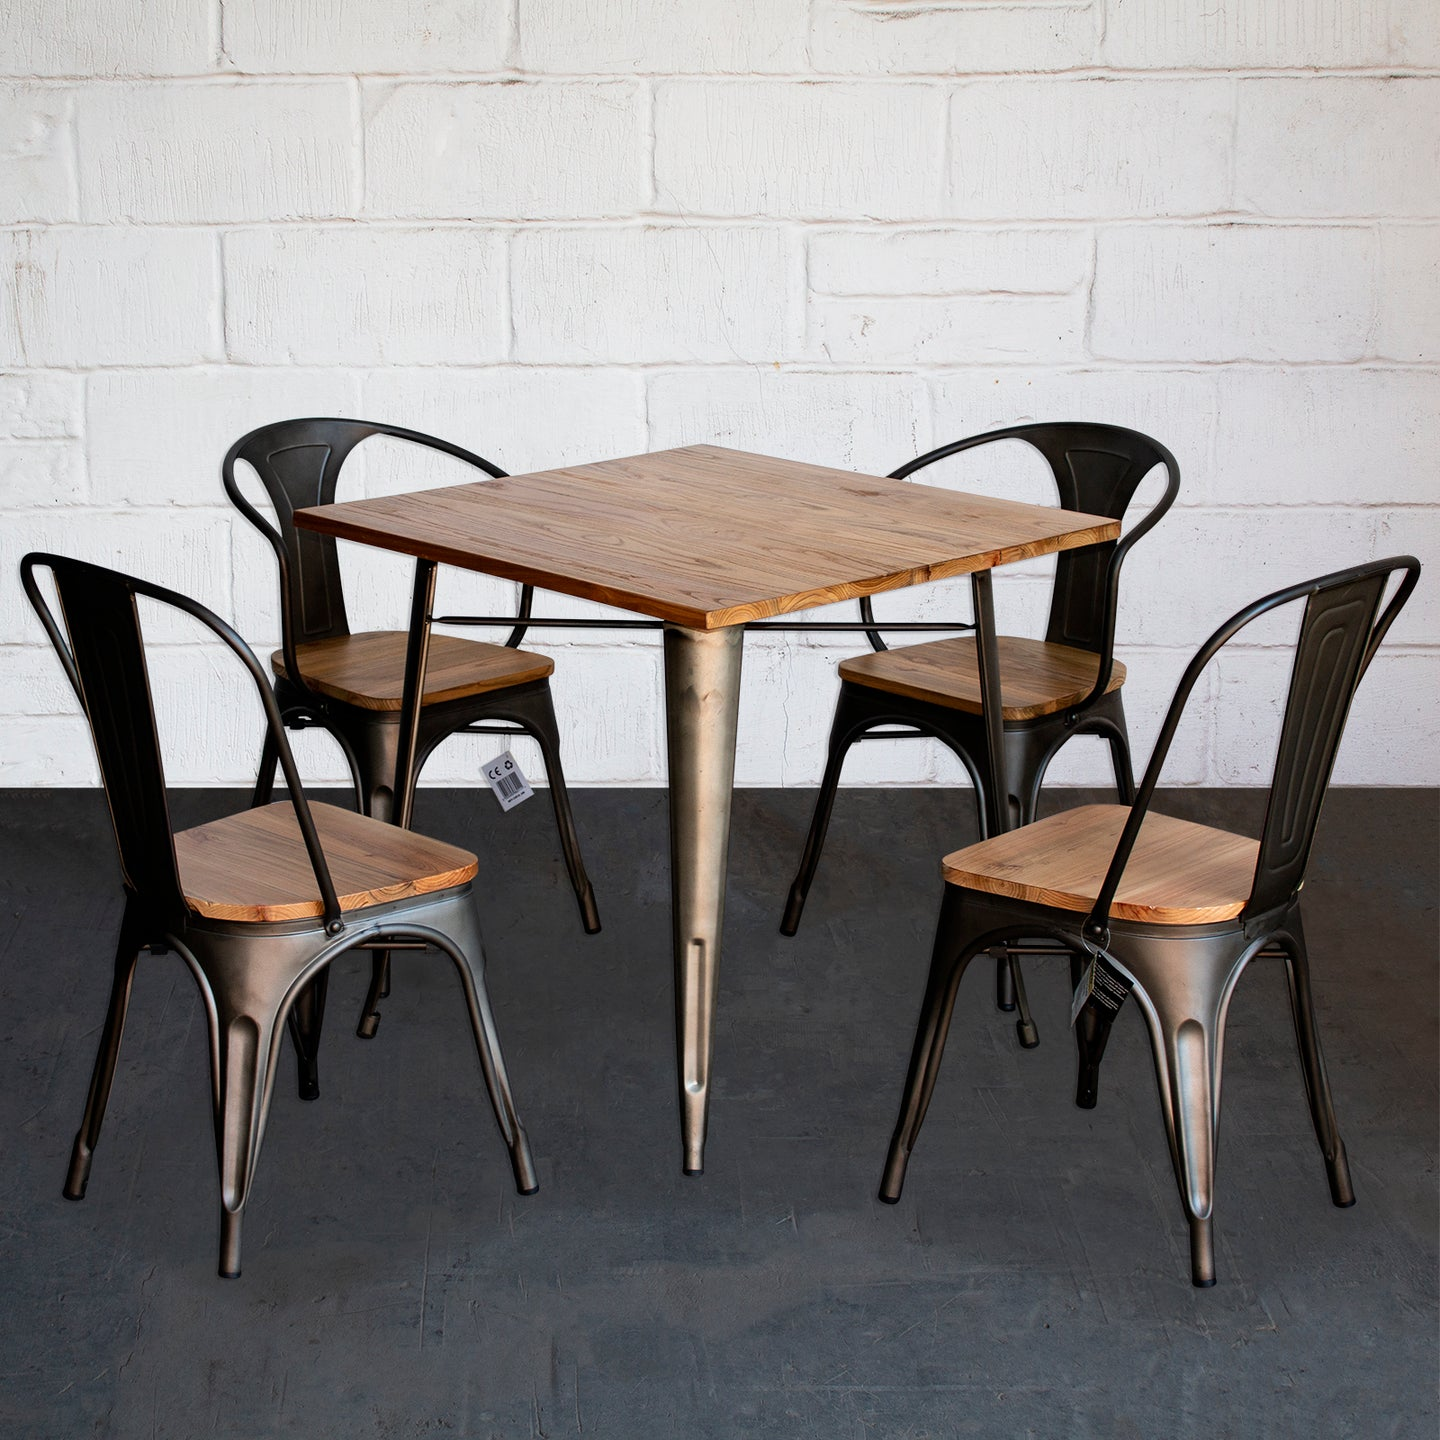 5PC Enna Table Florence & Palermo Chairs Set - Gun Metal Grey